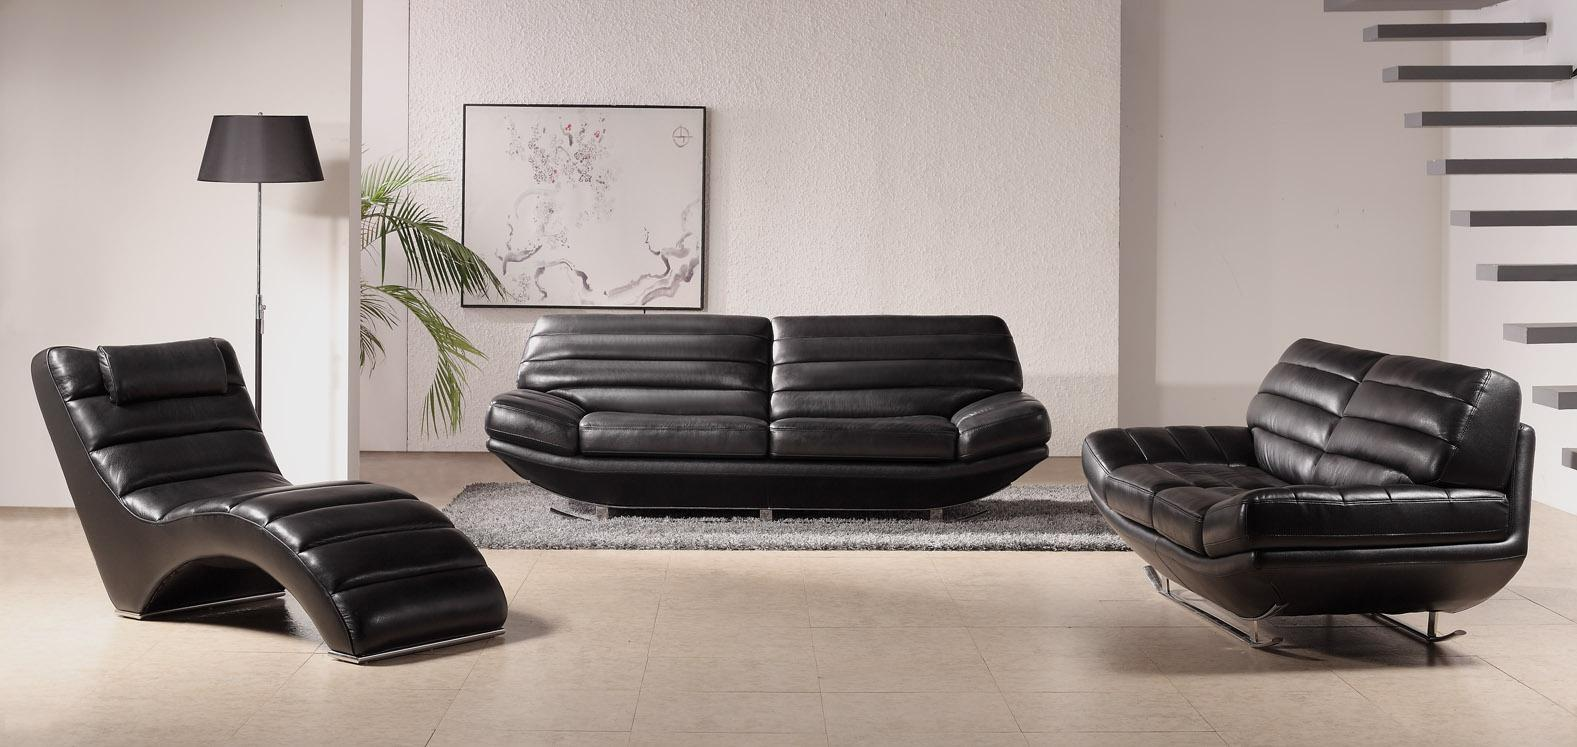 Know about types of couches and sofas my decorative for Modern living room furniture sets